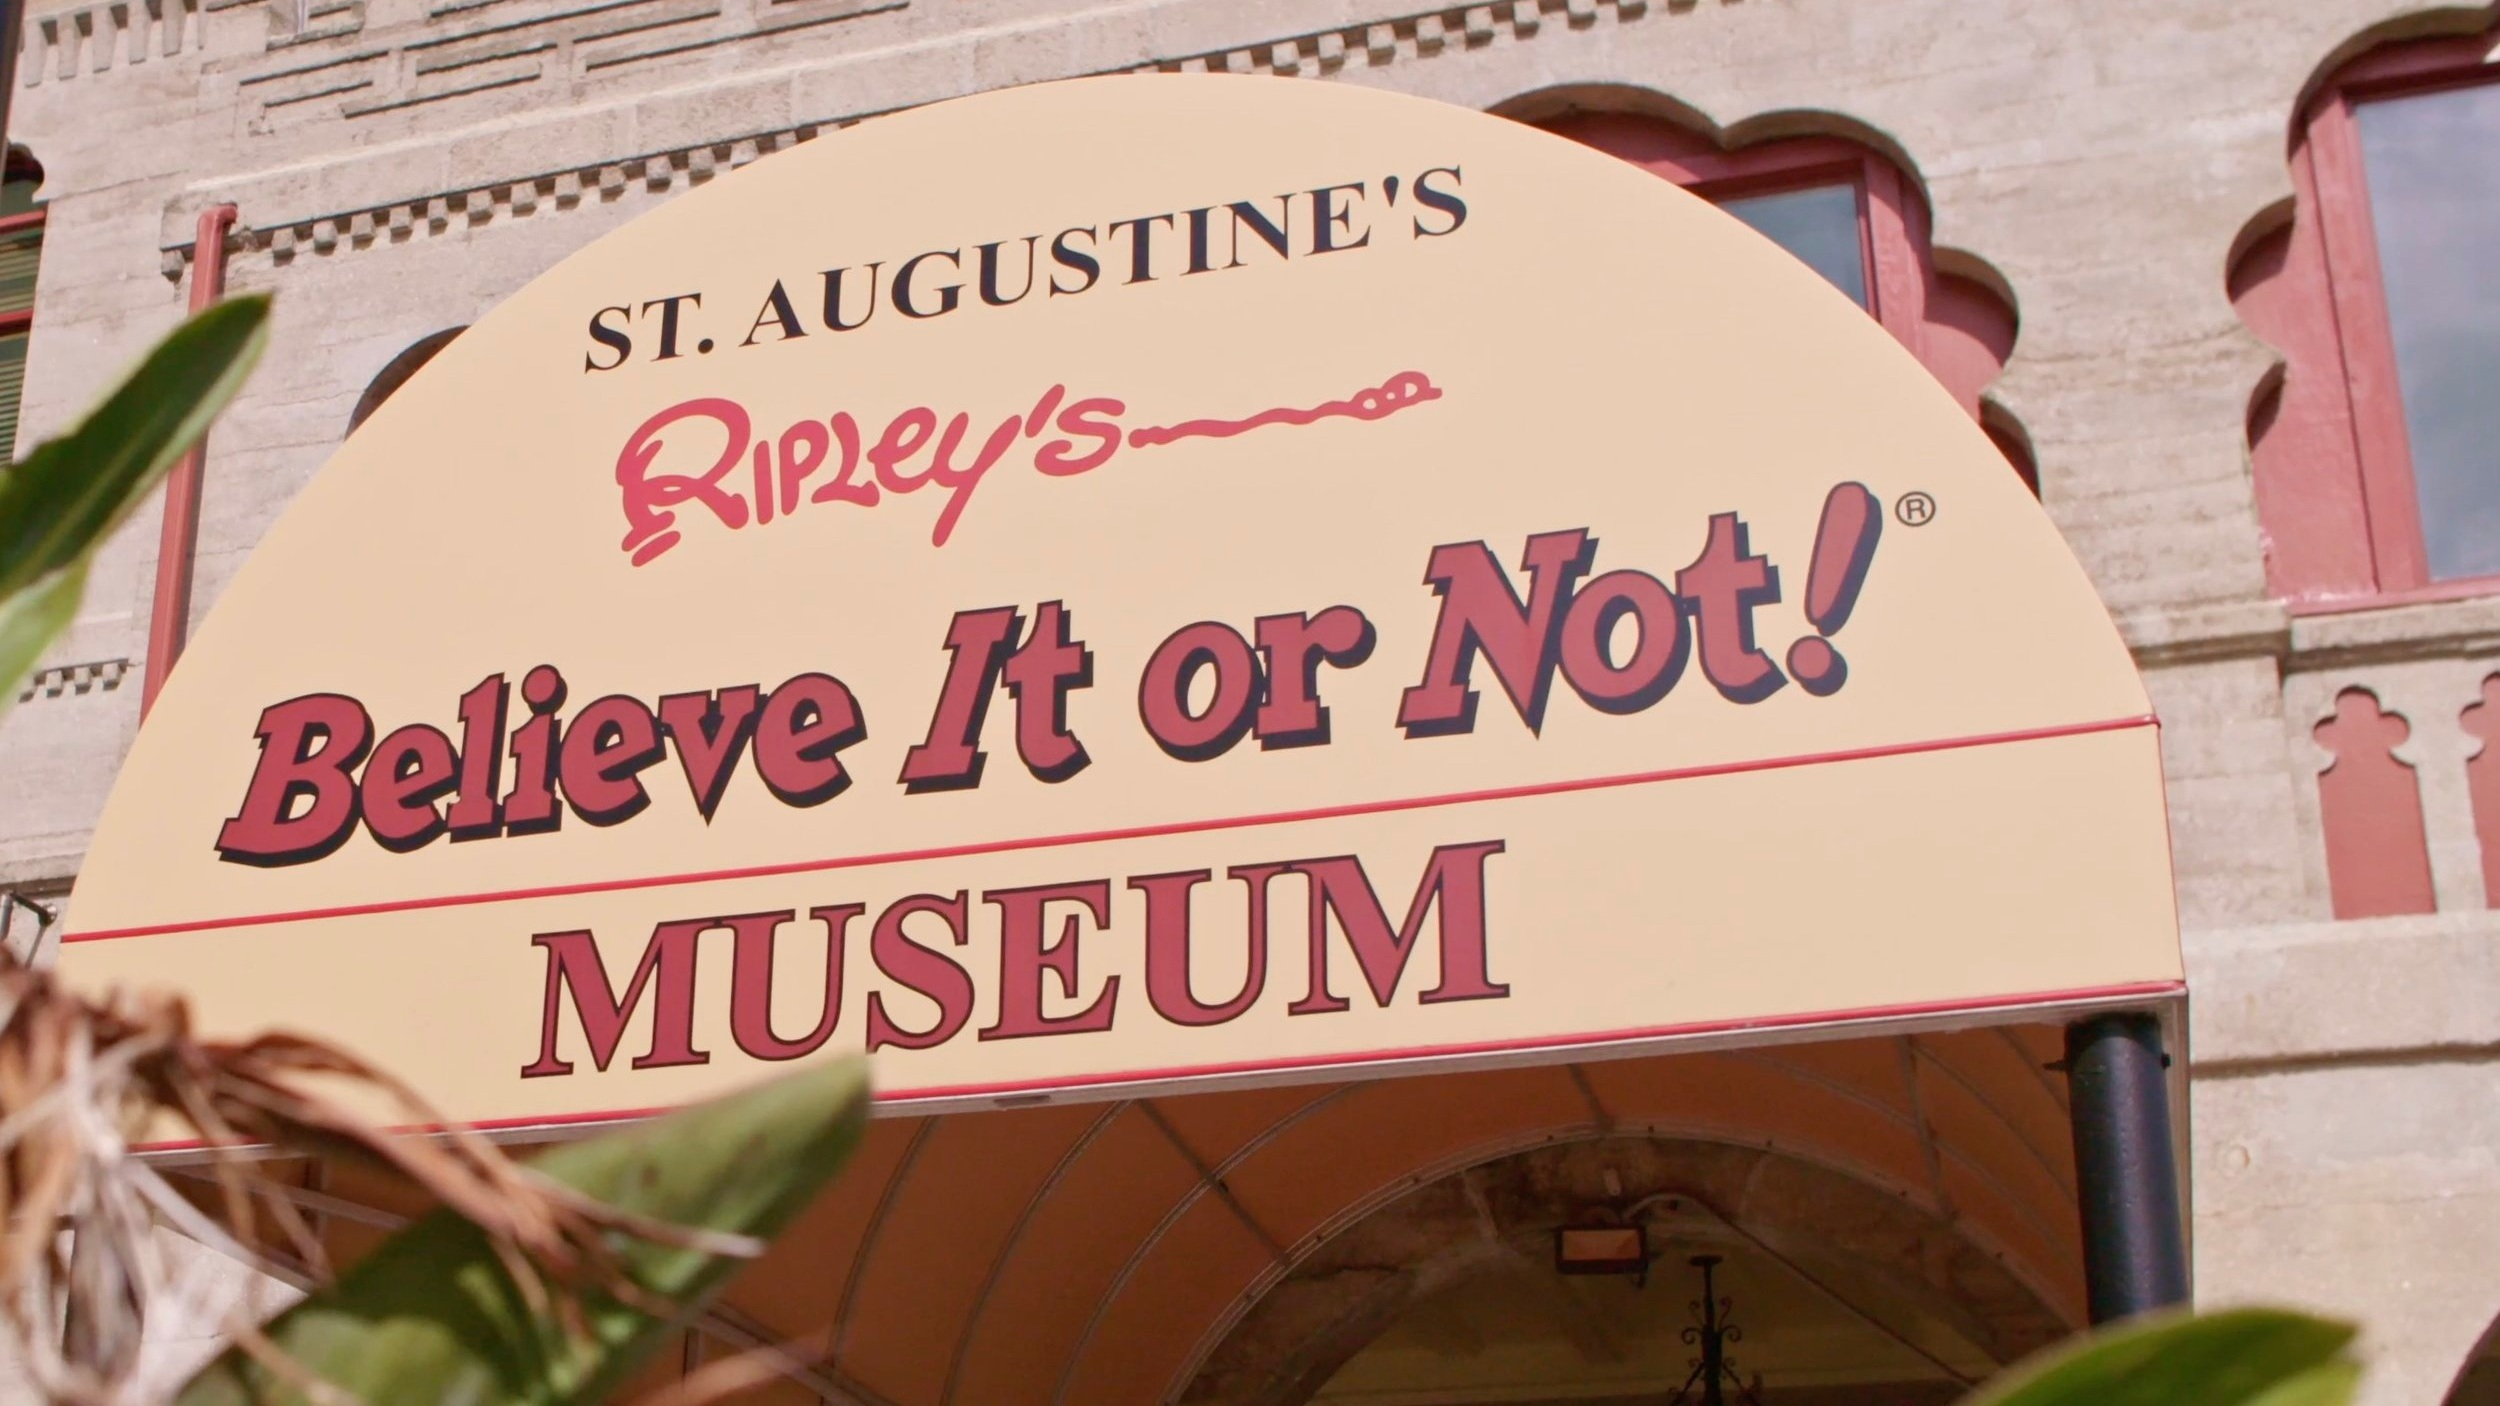 Ripley's Believe-It-or-Not! Odditorium - St. Augustine is proud to be the home of the original Ripley's Believe-It-or-Not! Odditorium. Get ready to experience the bizarre, explore the mysterious, and enjoy the weird.View in Directory